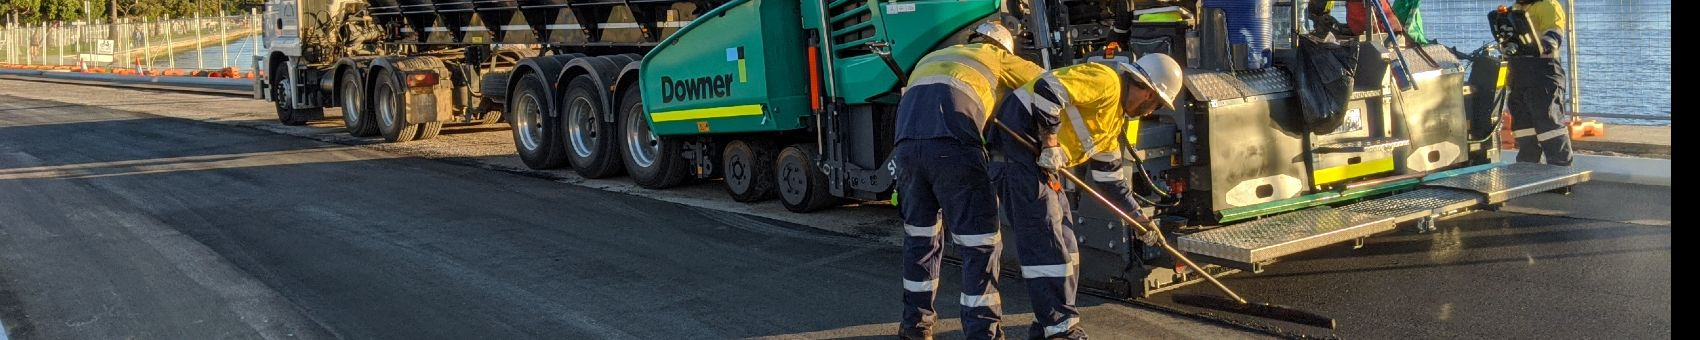 Pavement surfacing solutions